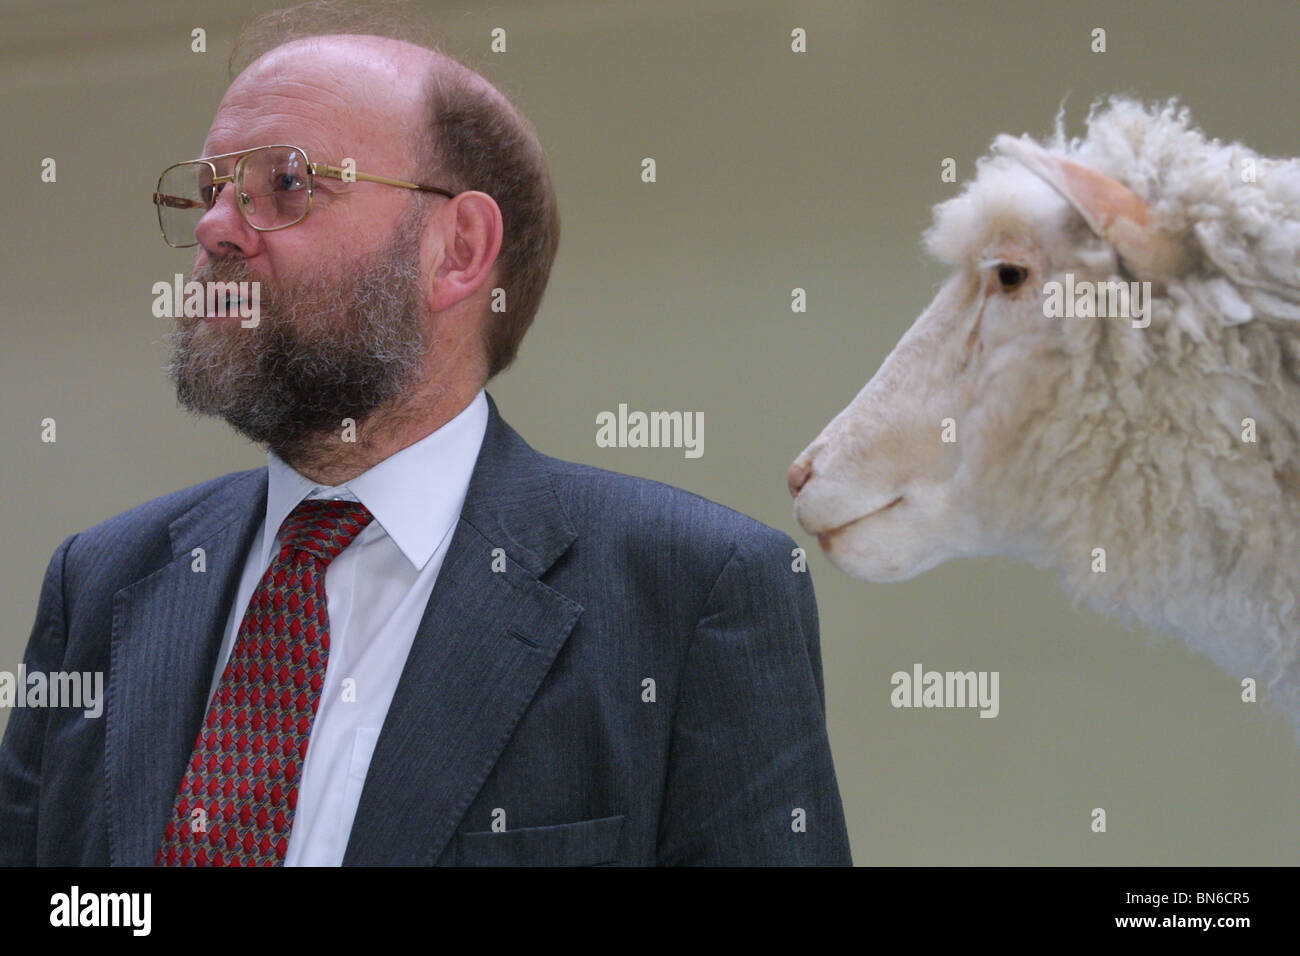 an analysis of the cloning of a sheep named dolly and ian willmuts technique The cloning of dolly and other ian wilmut and colleagues at ppl therapeutics/the roslin institute in it took 277 attempts to get 1 cloned sheep - dolly.